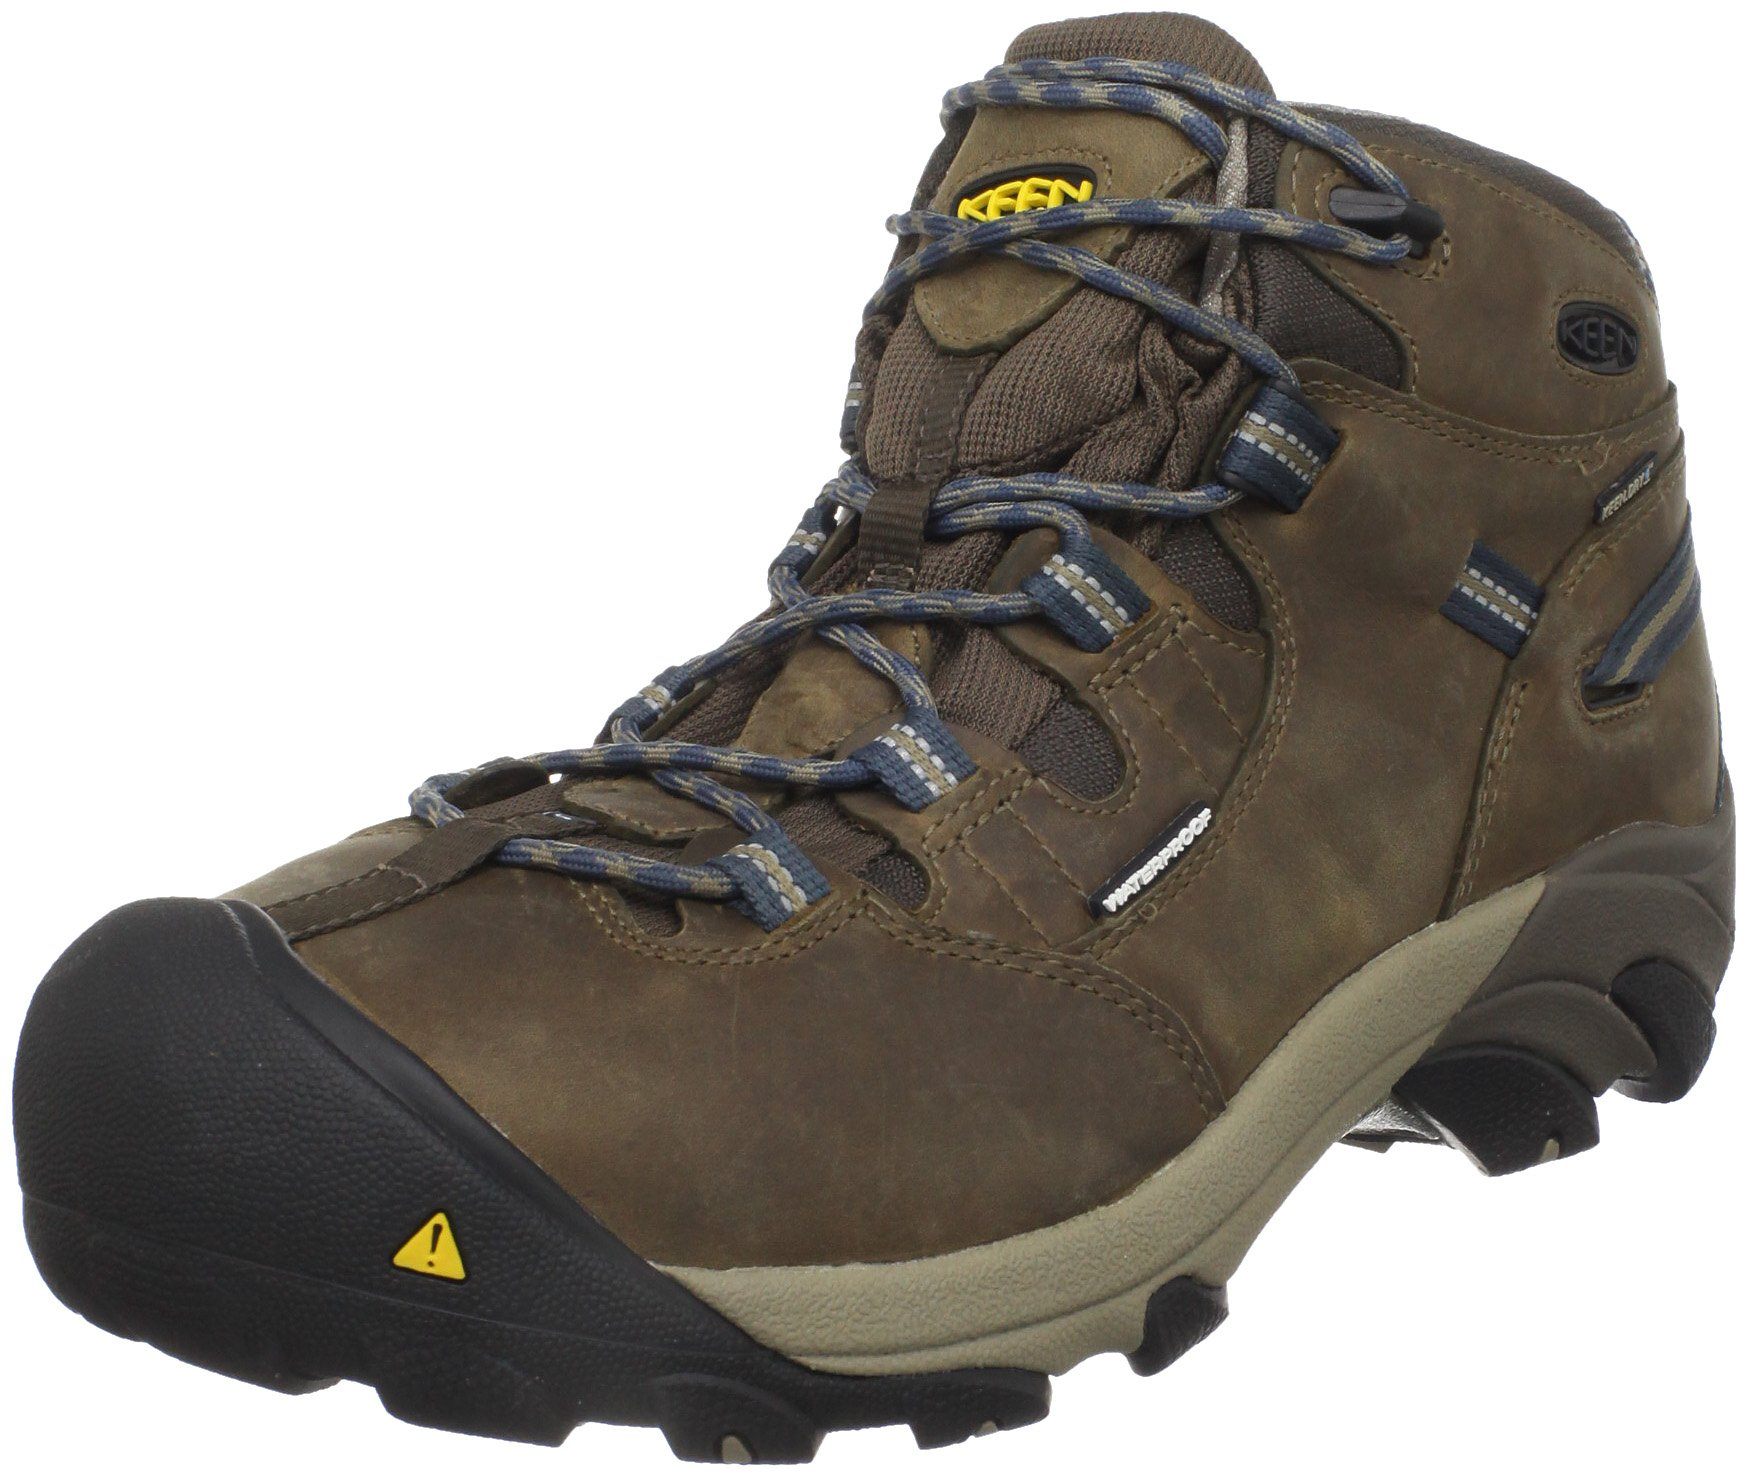 KEEN Utility Men's Detroit Mid Steel Toe Work Boot,Slate Black,12 D US by KEEN Utility